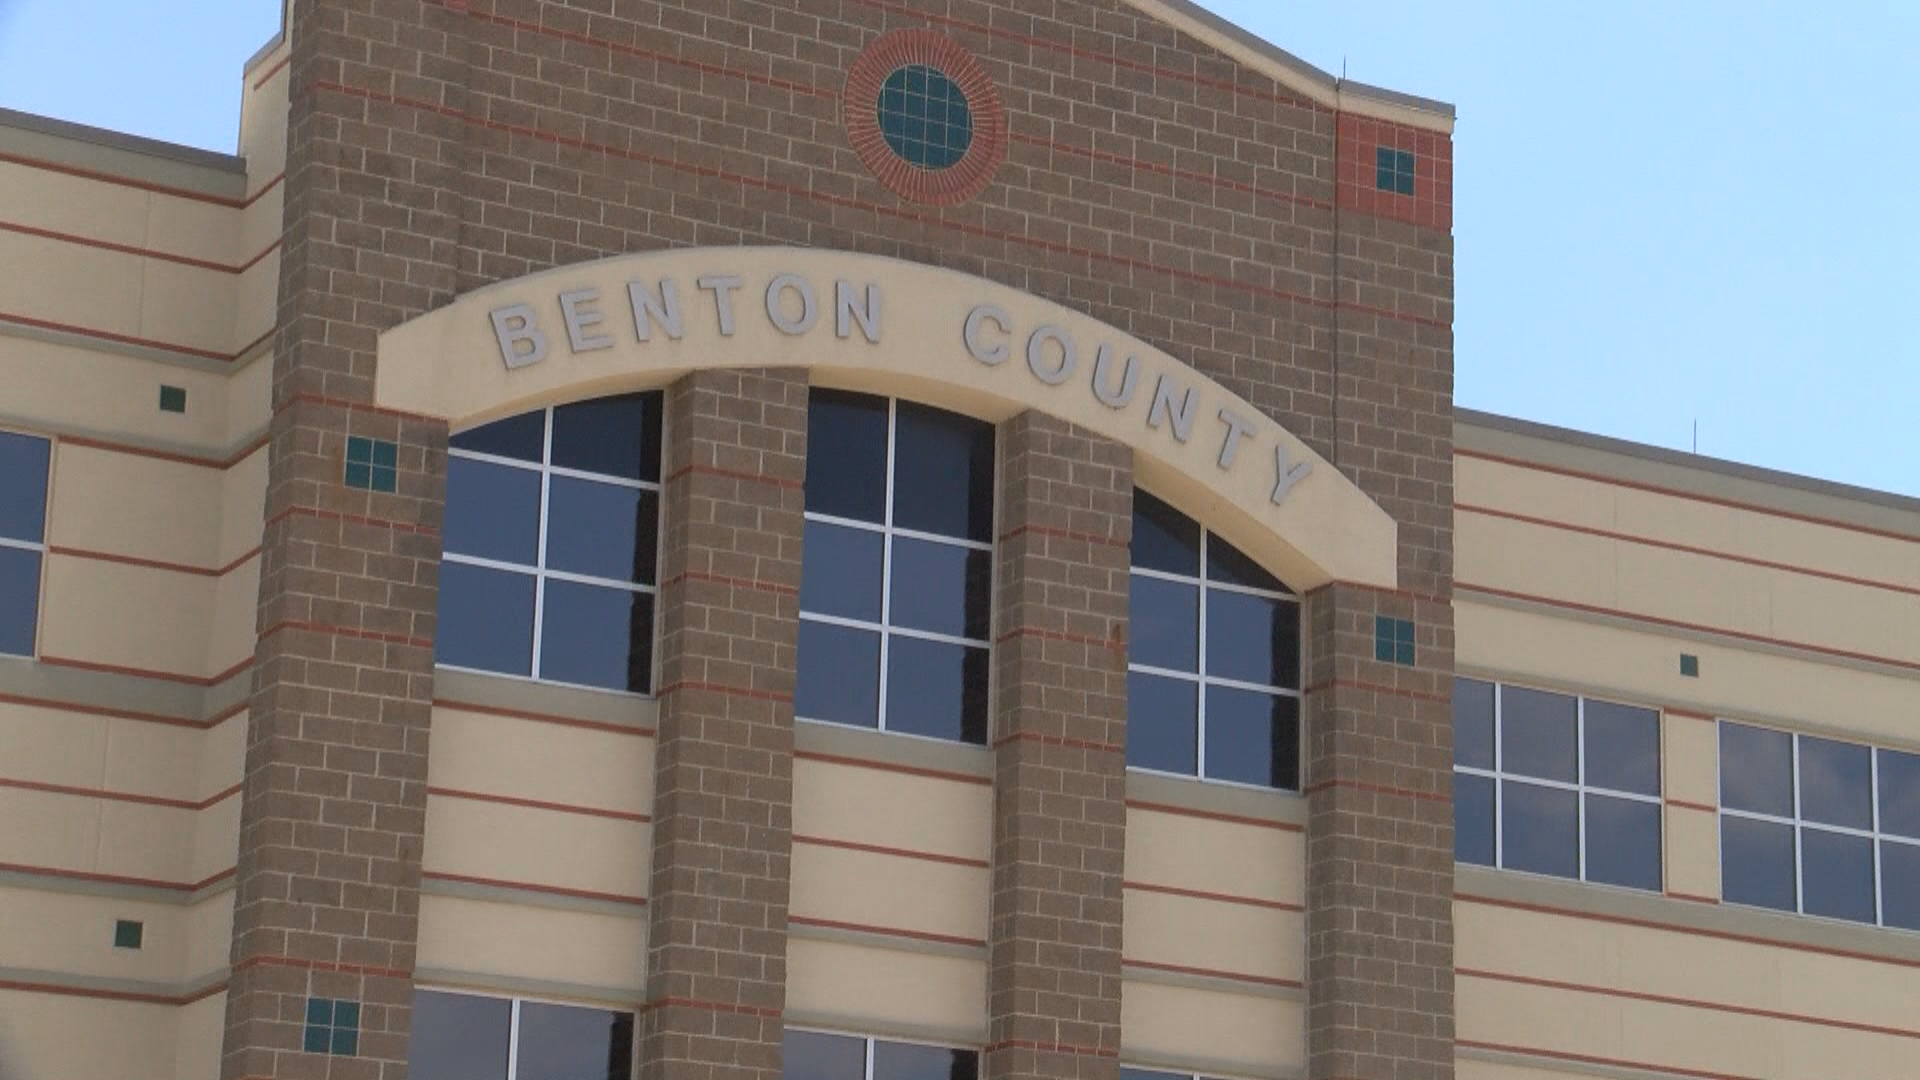 benton county picture_1527637442959.png.jpg